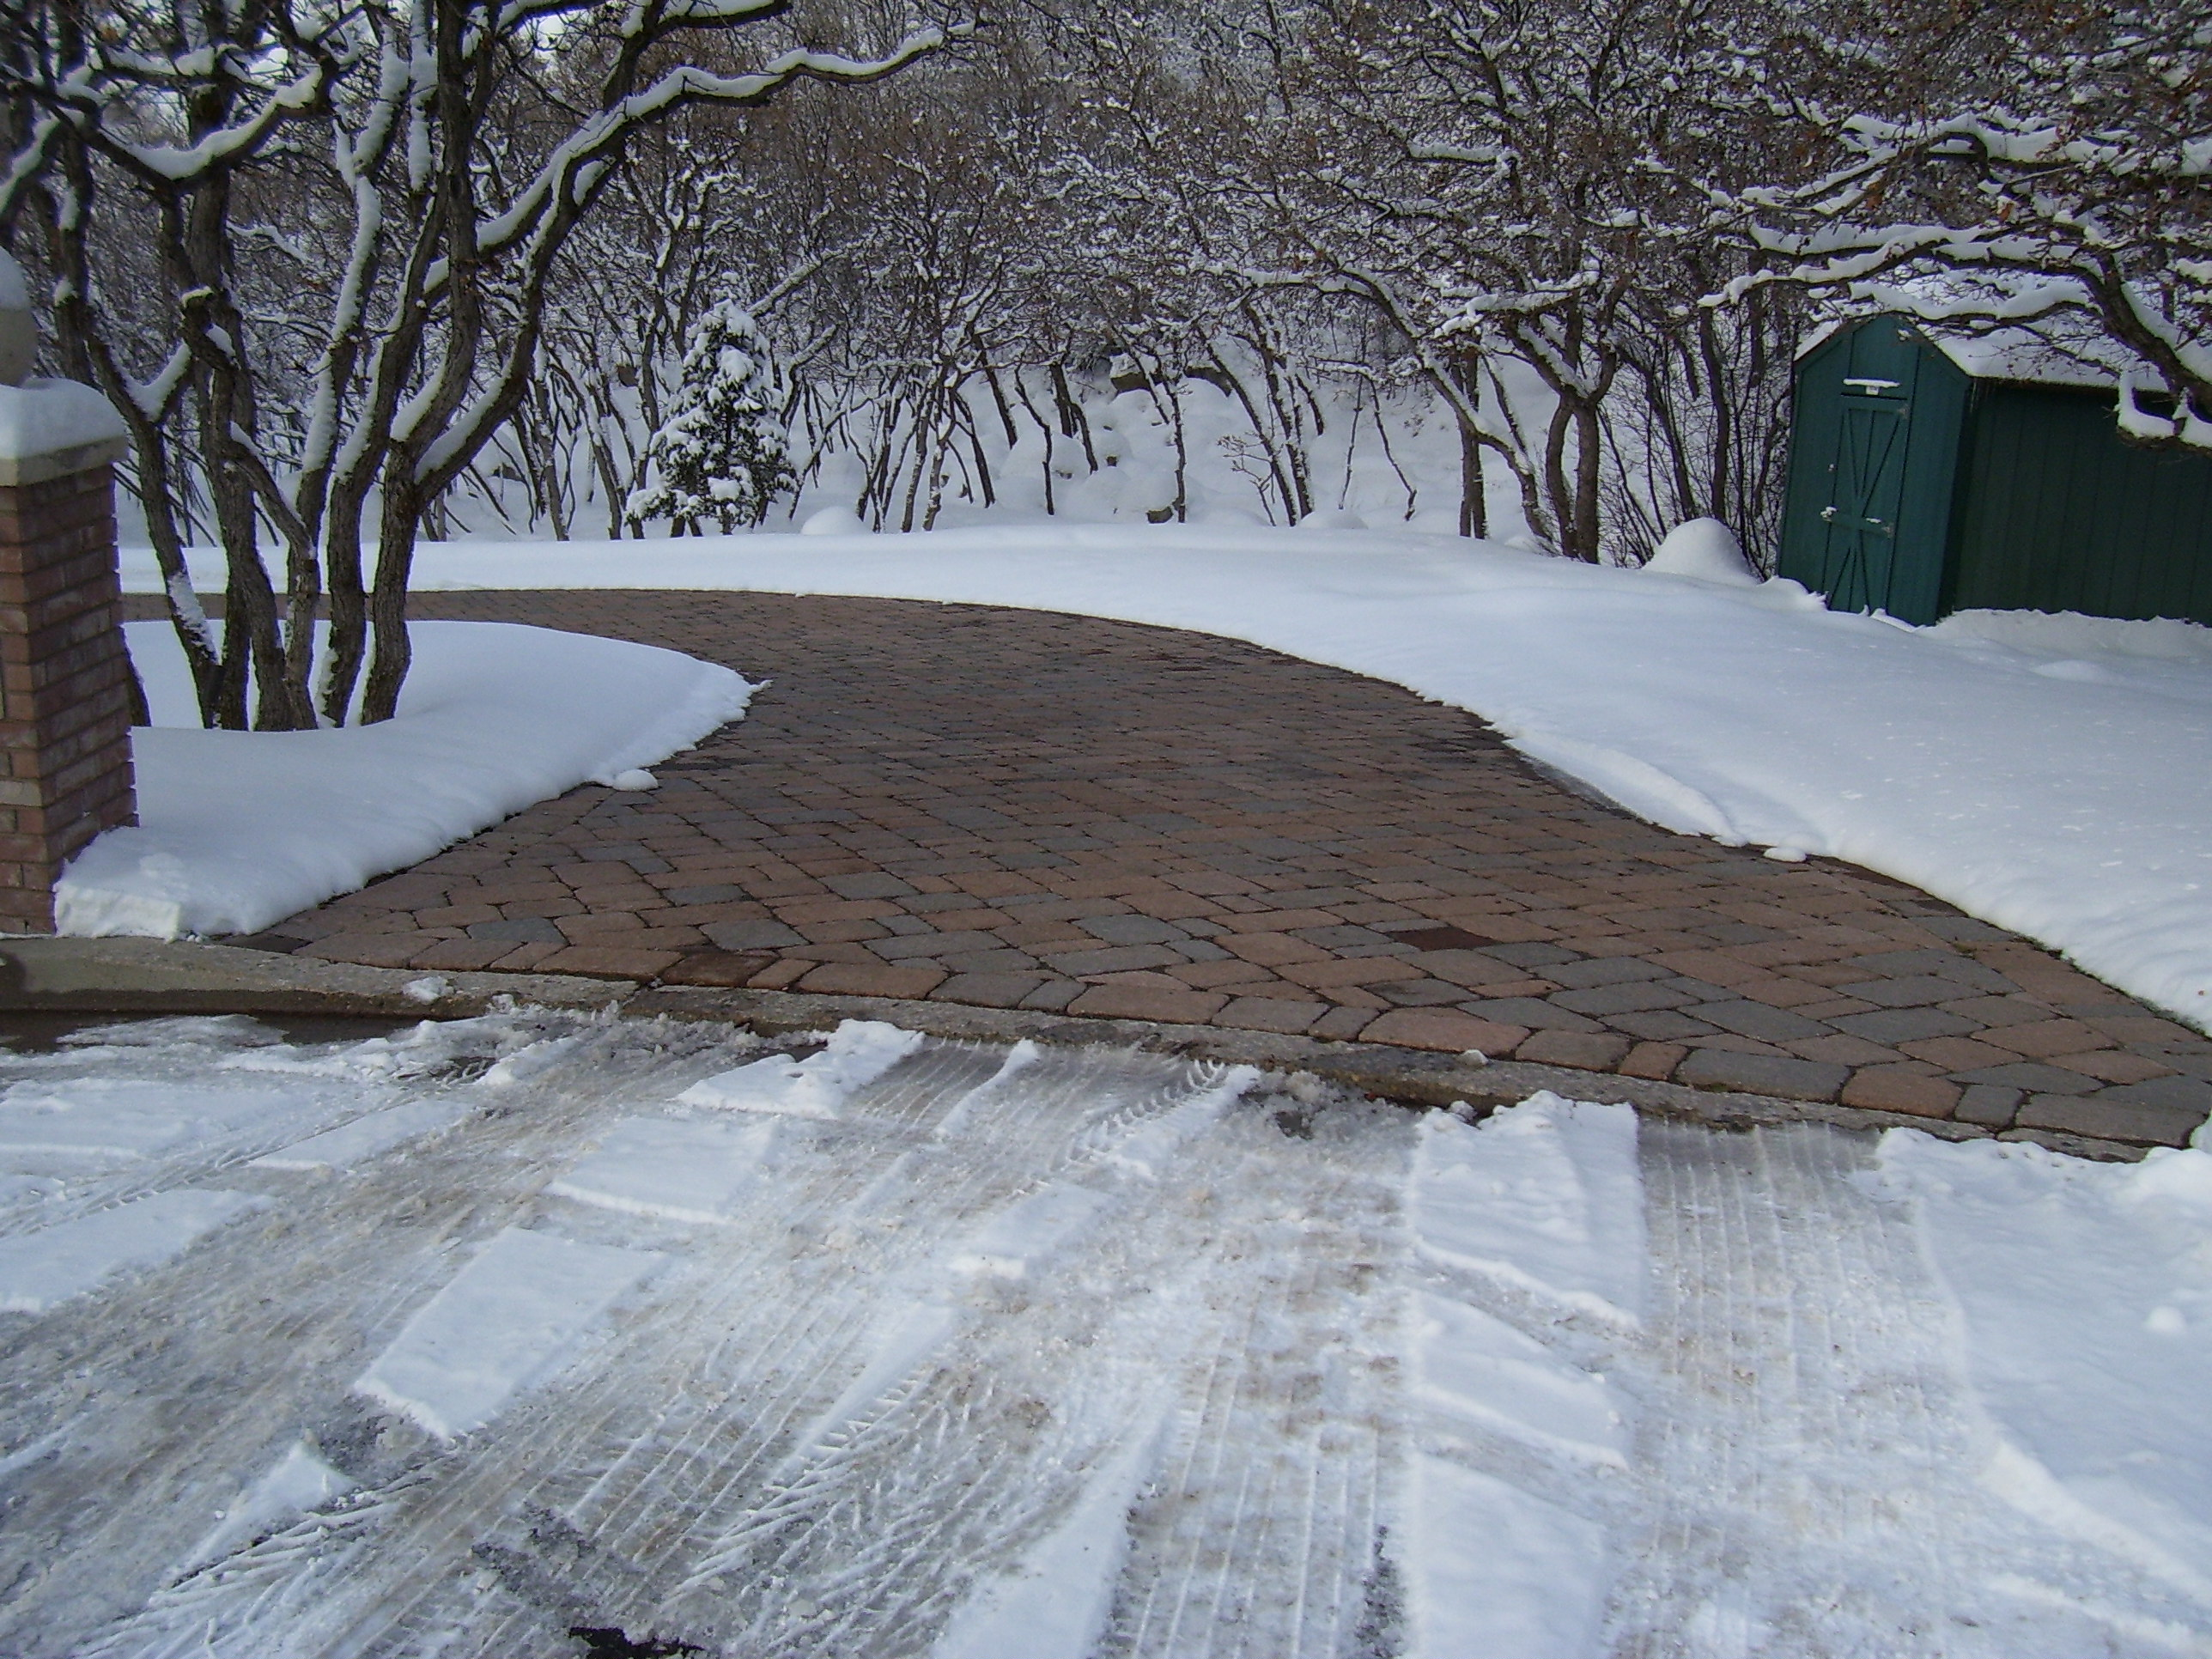 Diy heated driveway systems clublifeglobal warmzone promotes heated driveways to battle the miserable snow diy heated driveway systems clublilobal com solutioingenieria Choice Image